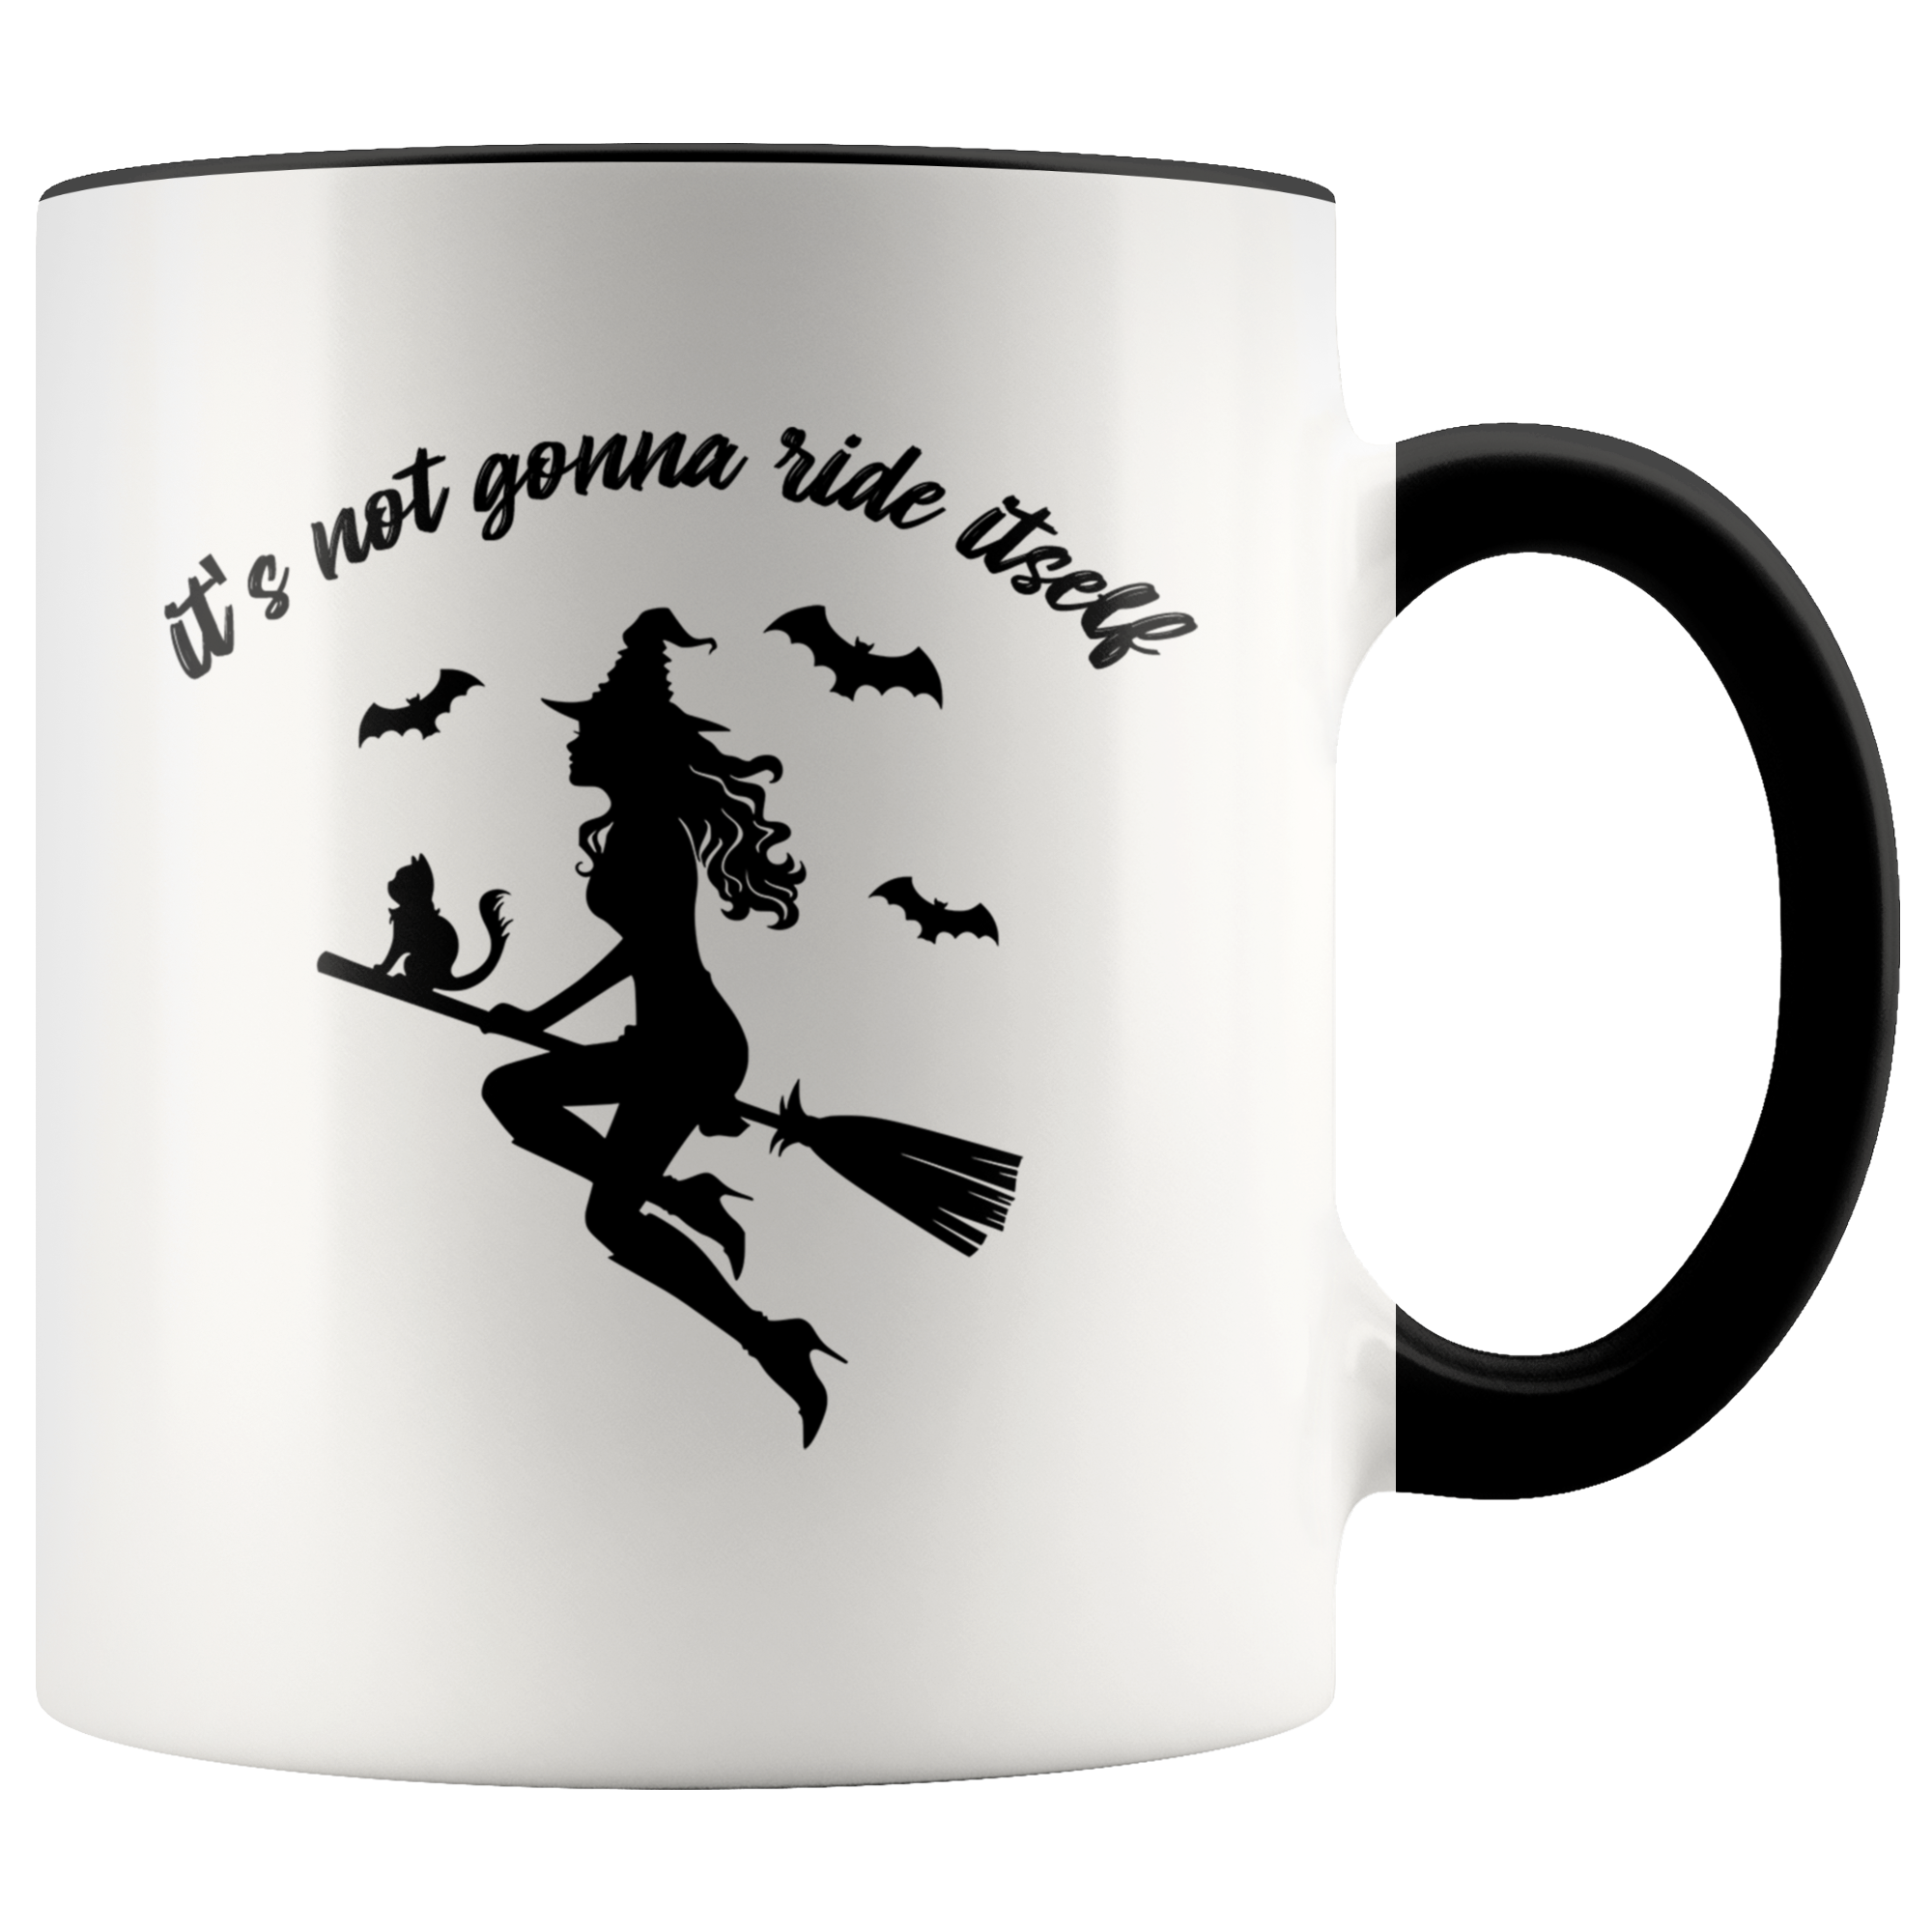 It's Not Gonna Ride Itself Mug